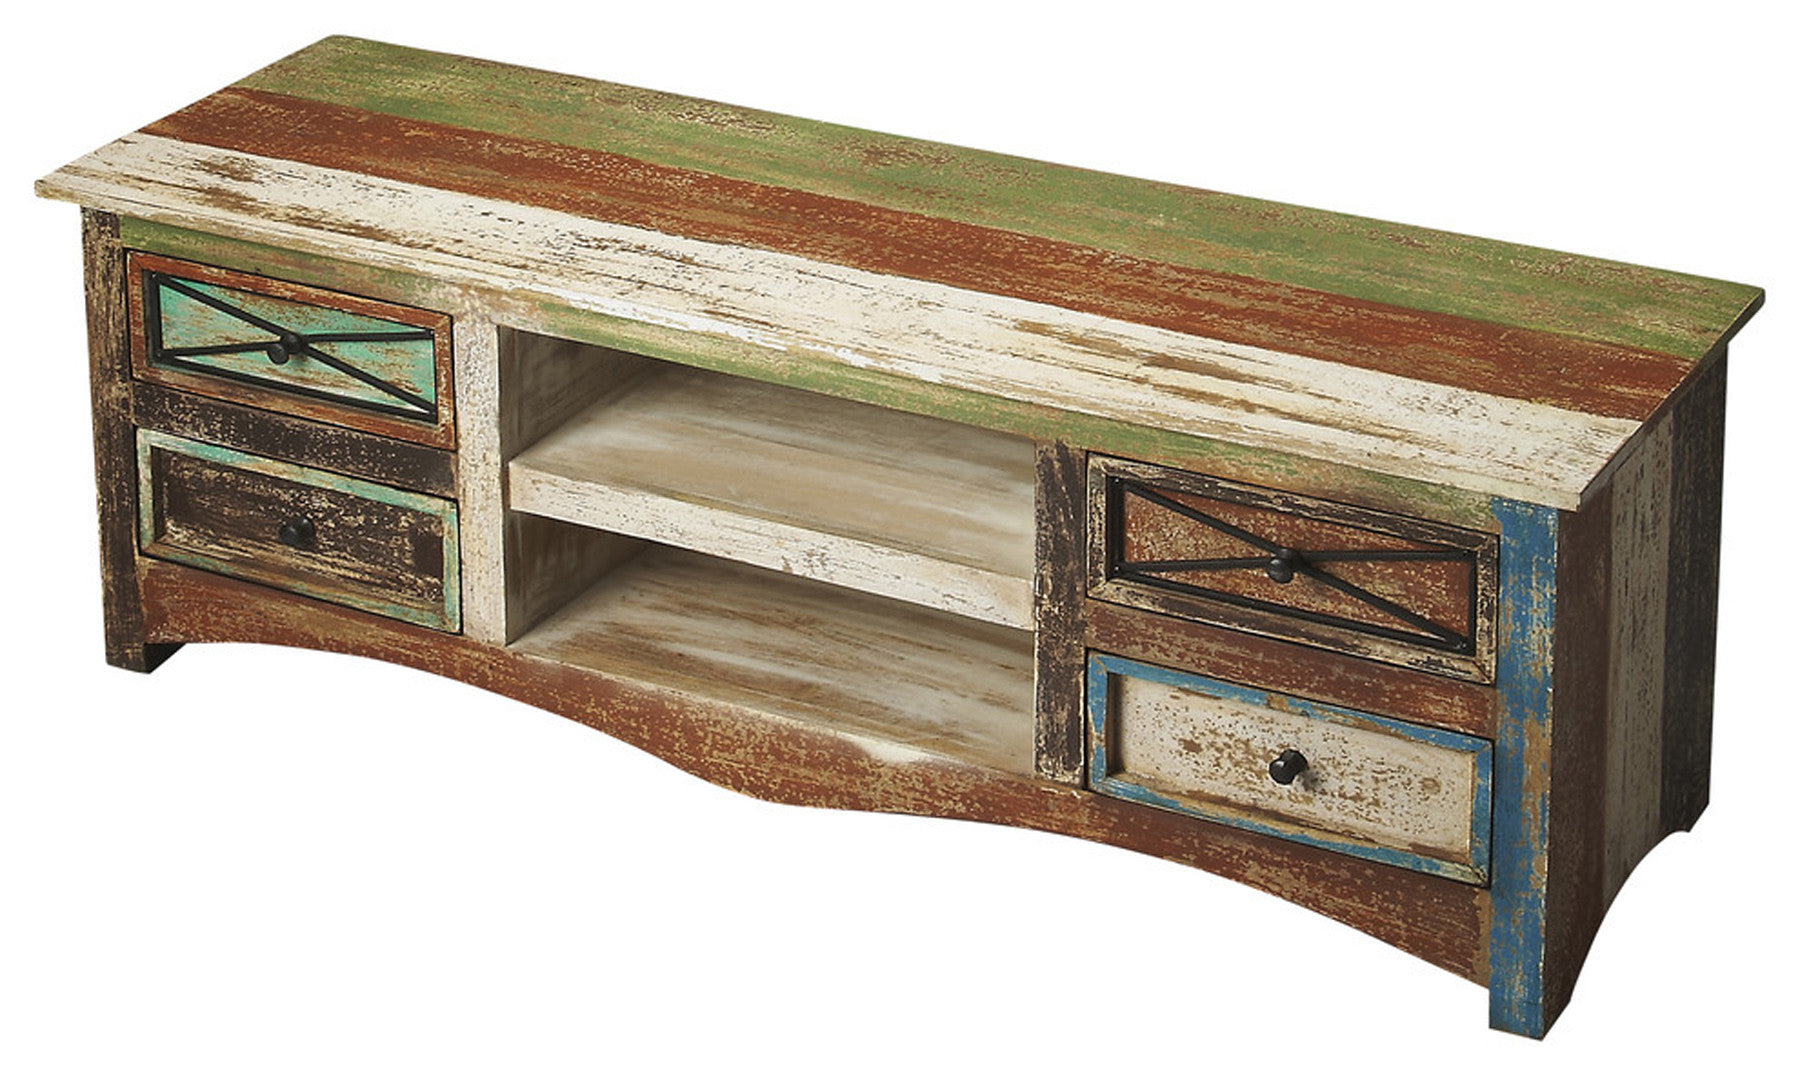 Decatur Recycled Wood Entertainment Console By Butler Specialty Company  4238290 ...